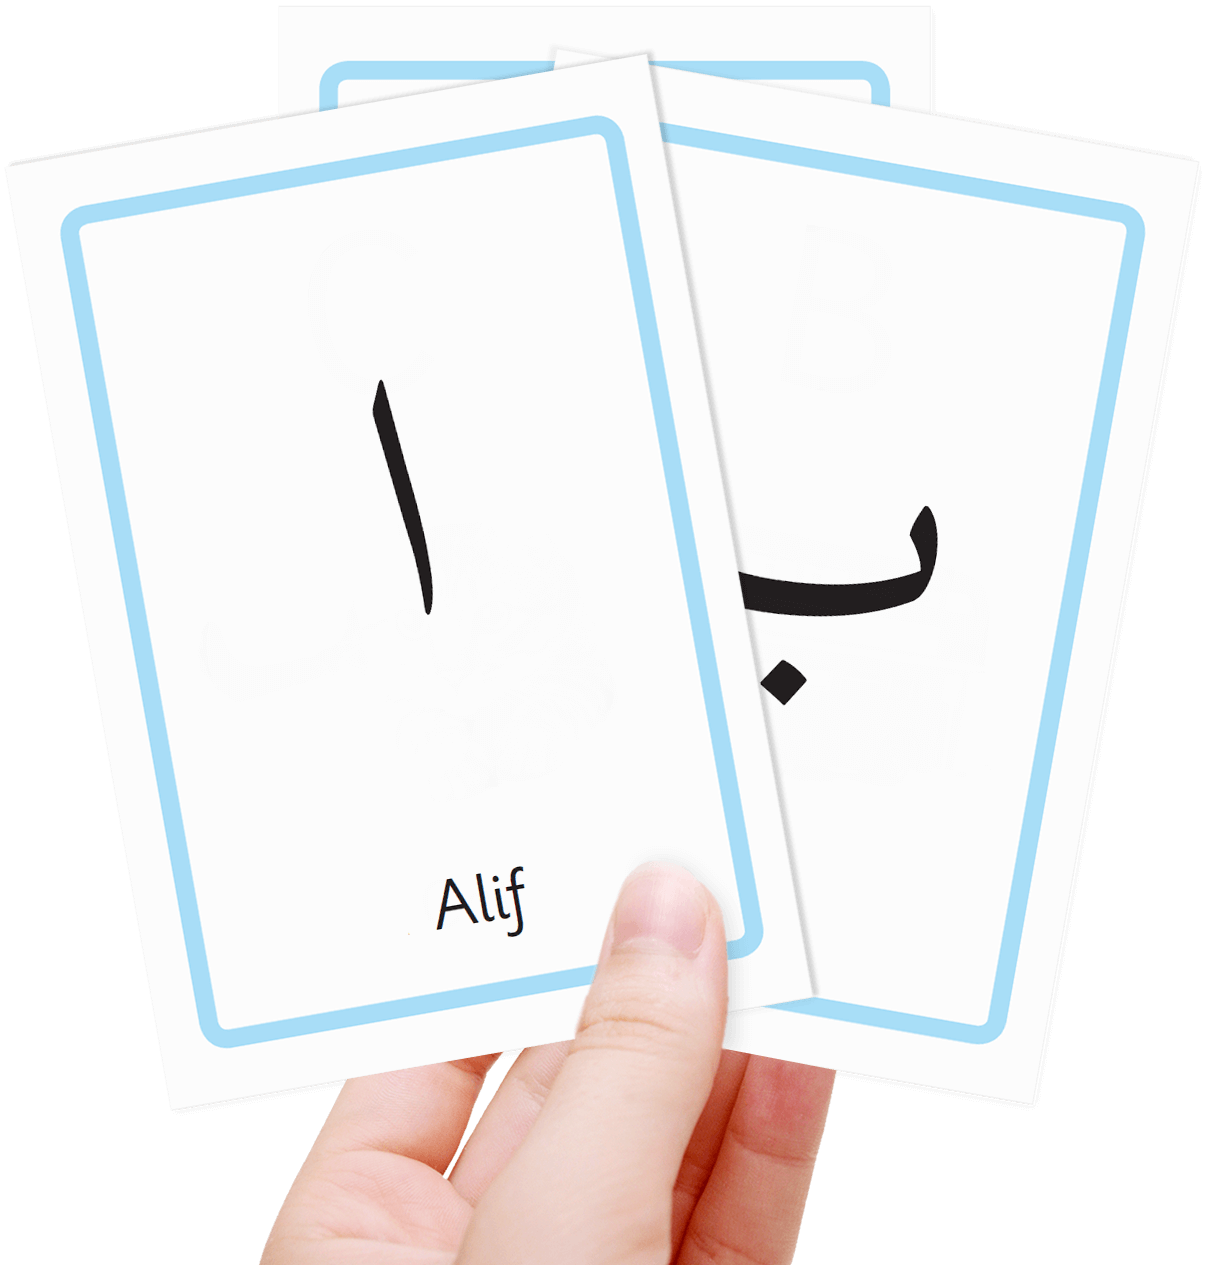 Clipart arabic letters graphic freeuse stock Free Arabic alphabet flashcards for kids - Totcards graphic freeuse stock